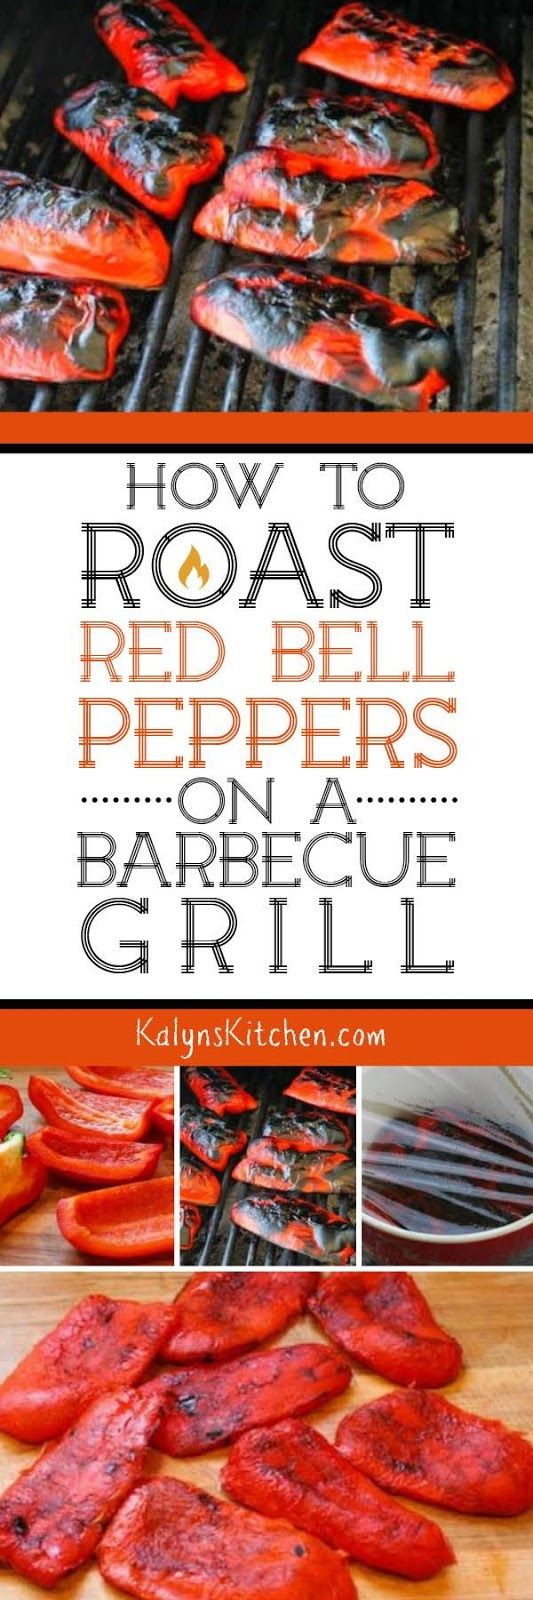 There's nothing wrong with roasted red peppers from a jar, but when you roast your own peppers, the flavor is amazing. This post will show you How To Roast Red Bell Peppers on a Barbecue Grill; it's easy! [found on KalynsKitchen.com]